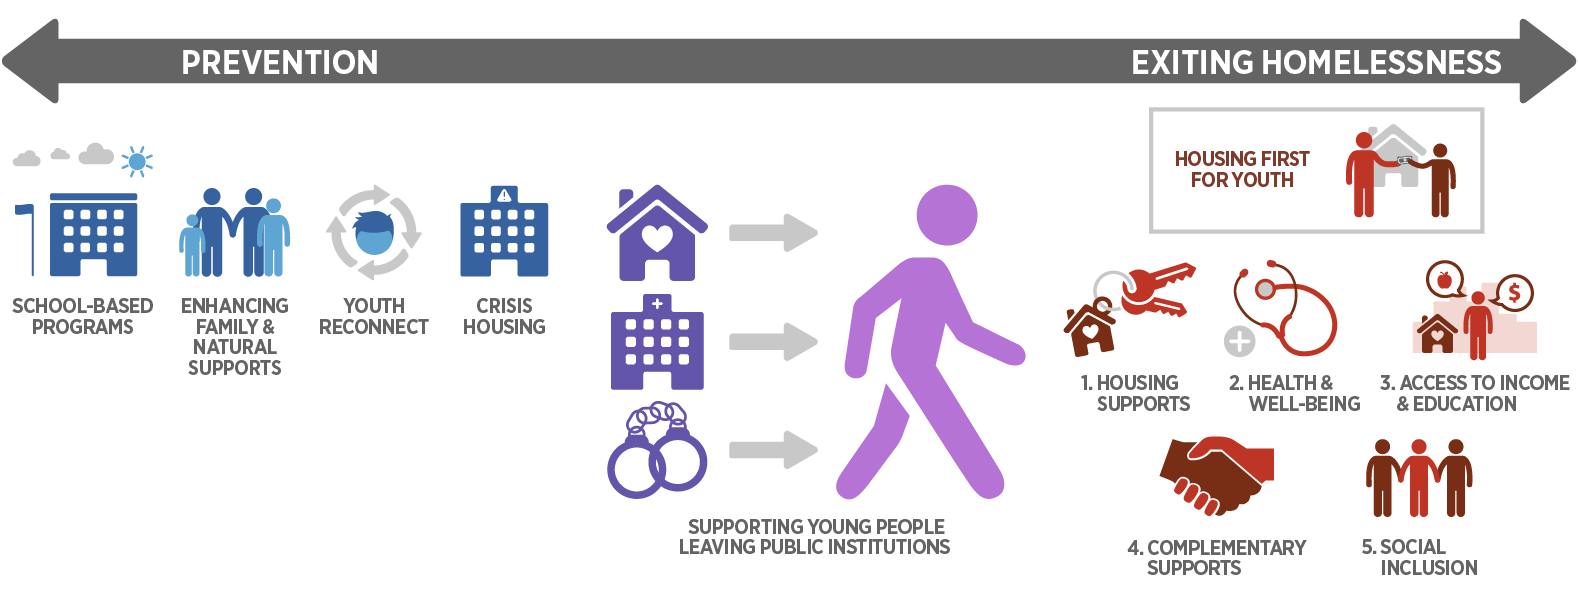 Prevention and Exiting Homelessness Infographic